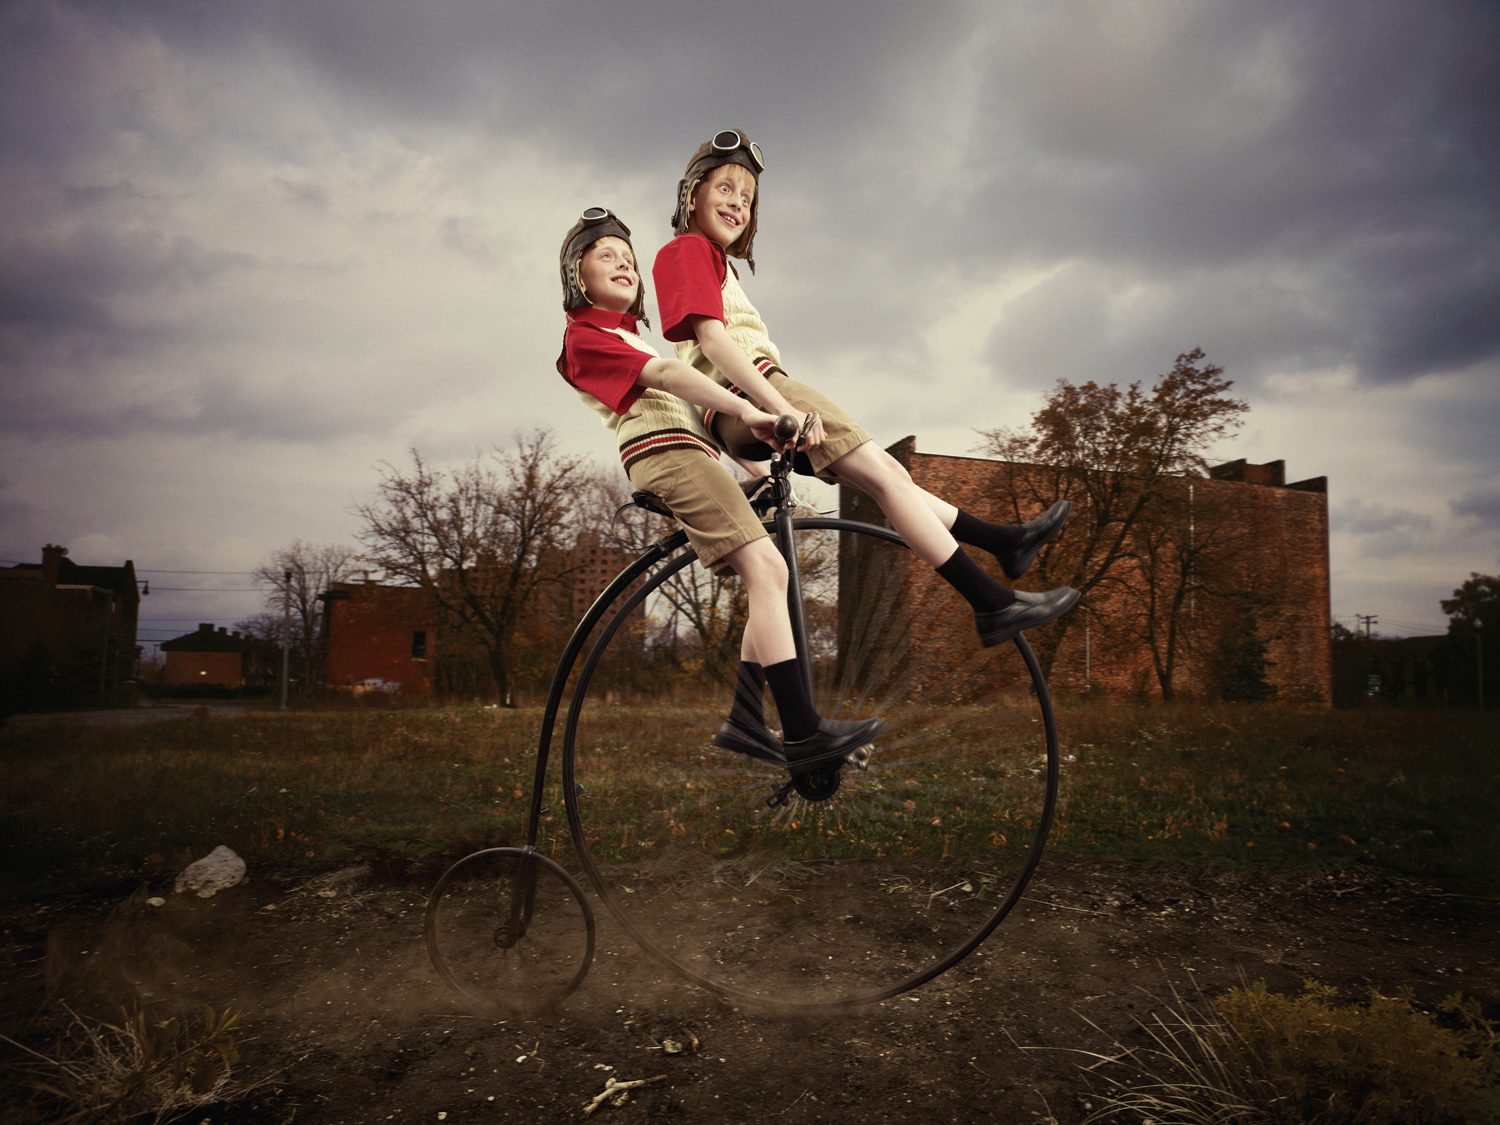 Russian twins on penny farthing bike in Detroit,2012. A collaboration with digital artist Brad Pickard.